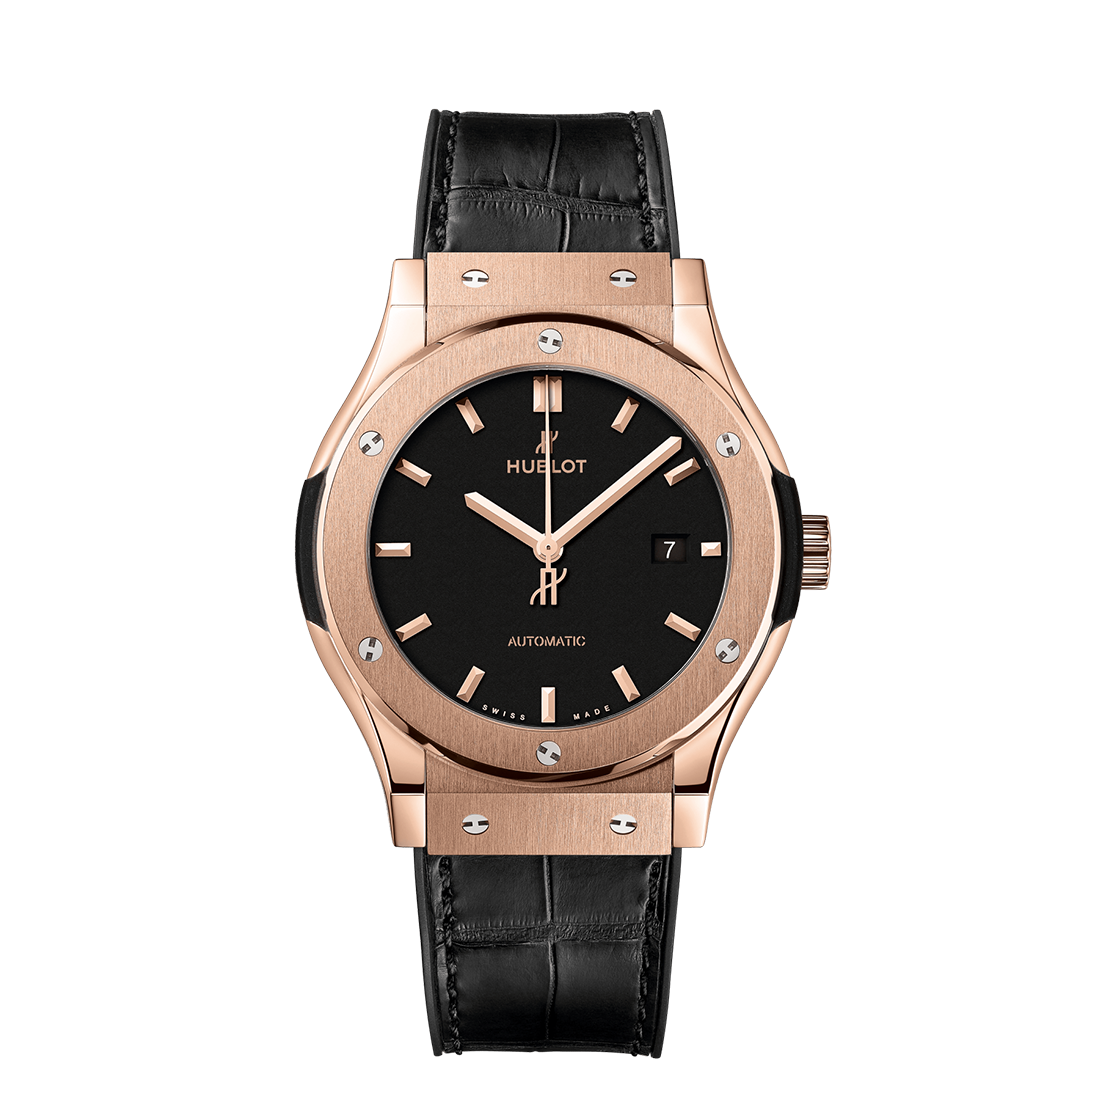 Hublot Classic Fusion Black King Gold Leather Strap